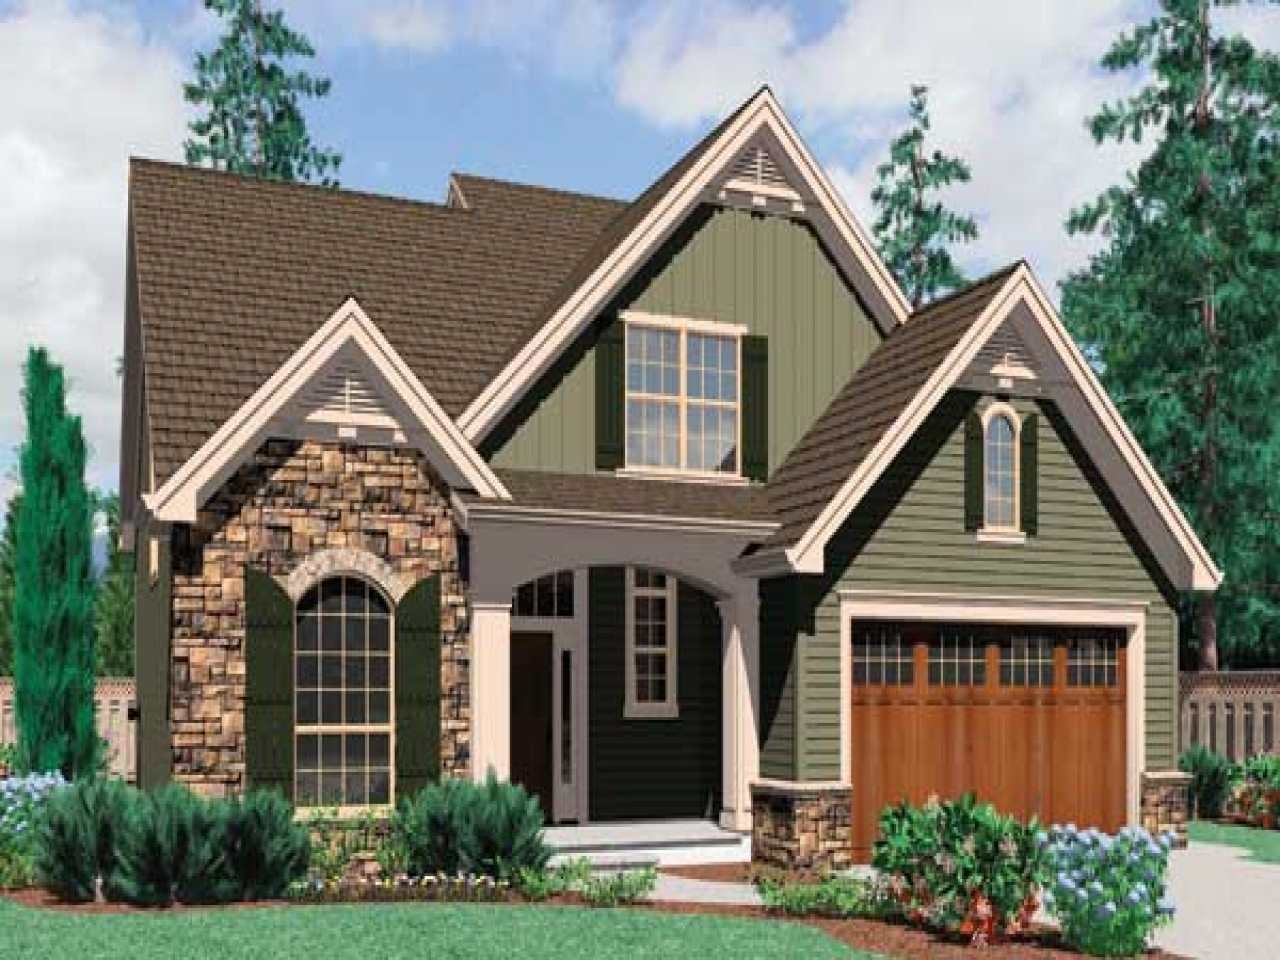 French cottage style house plans french cottage style for French cottage home designs